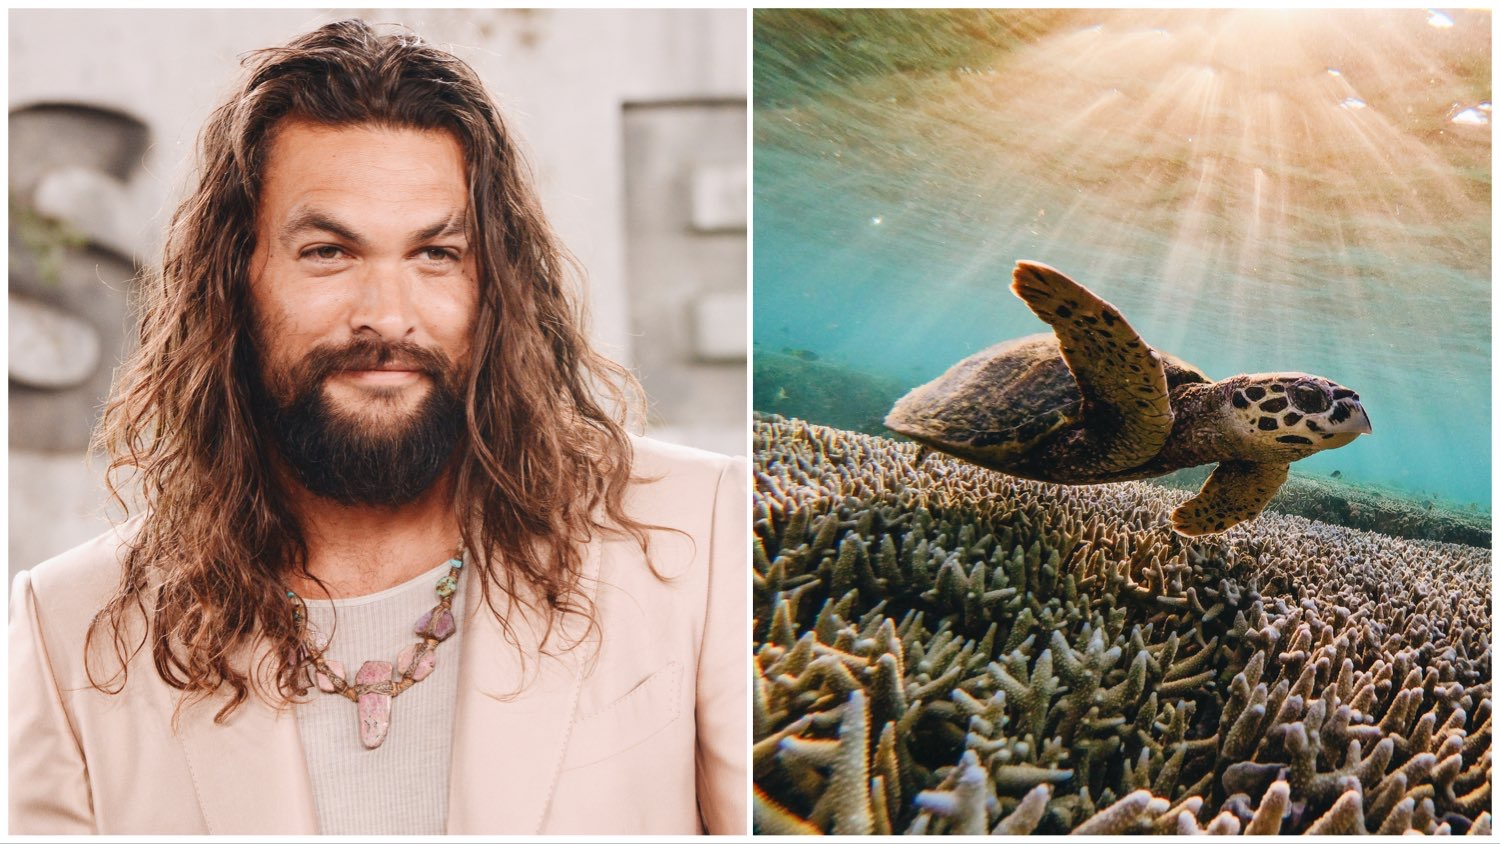 Split image featuring environmentalist and actor Jason Momoa (left) and a sea turtle swimming above coral (right).